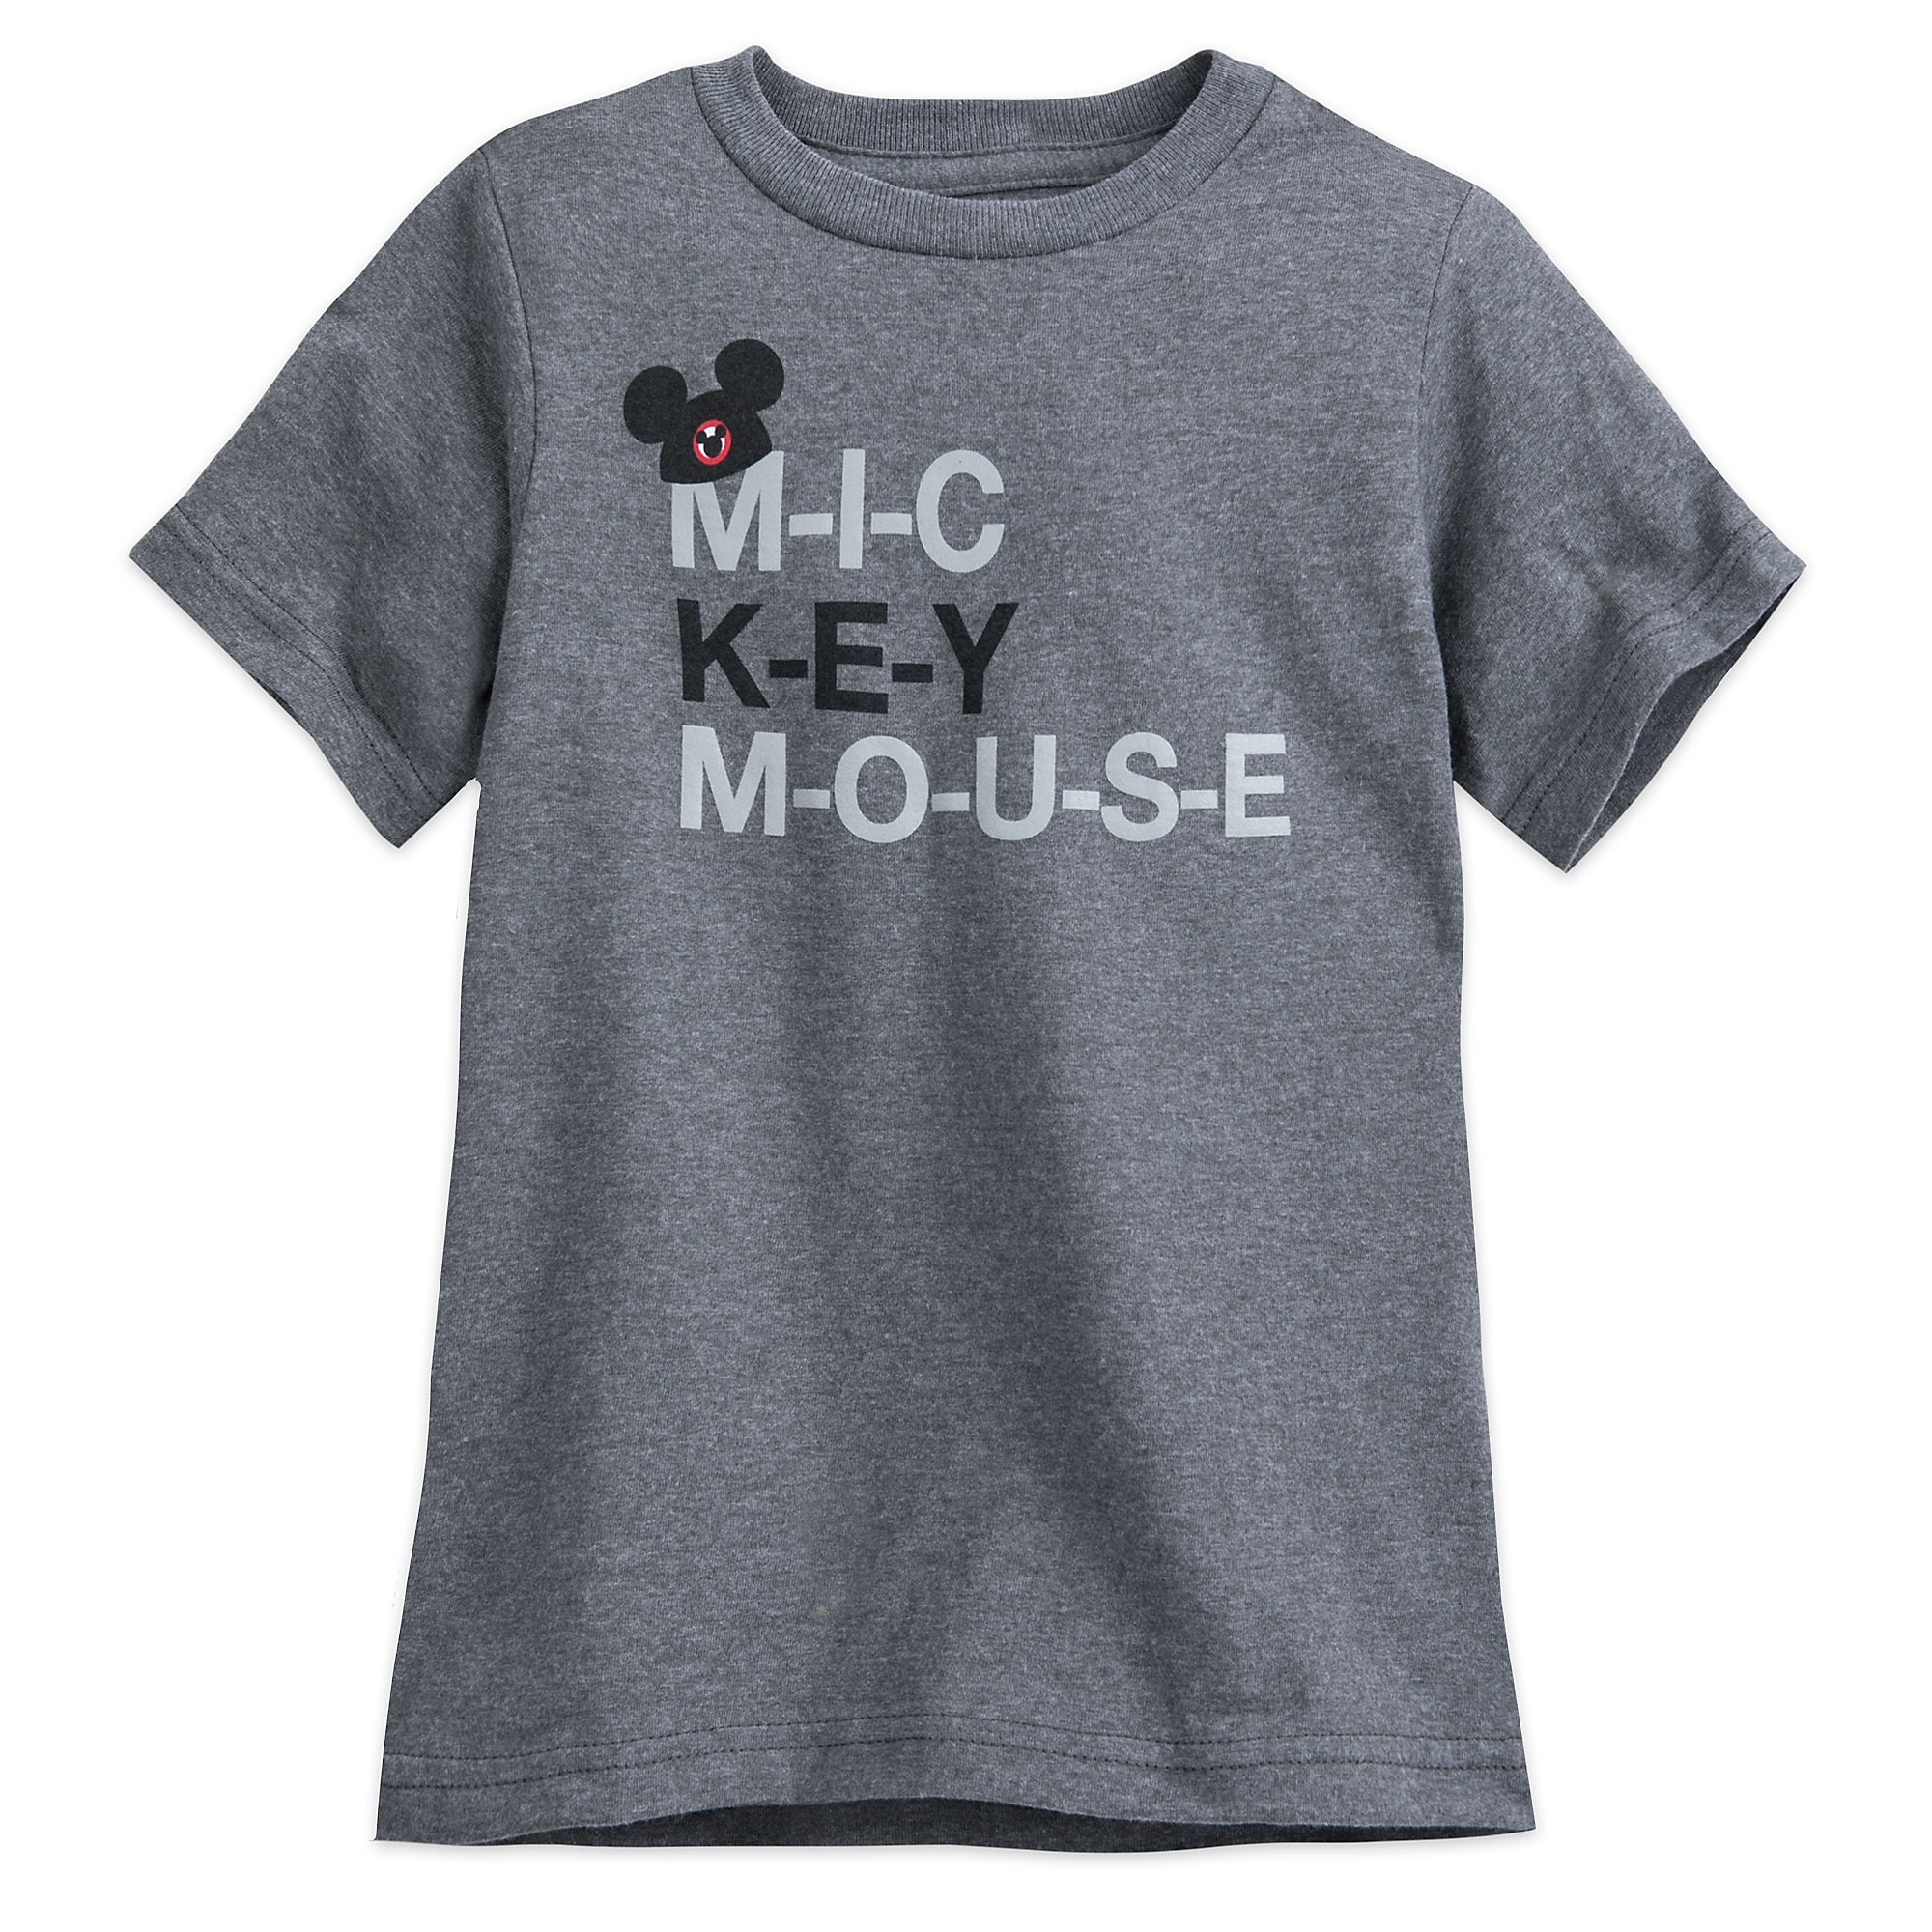 The Mickey Mouse Club Mouseketeer Text T-Shirt for Kids